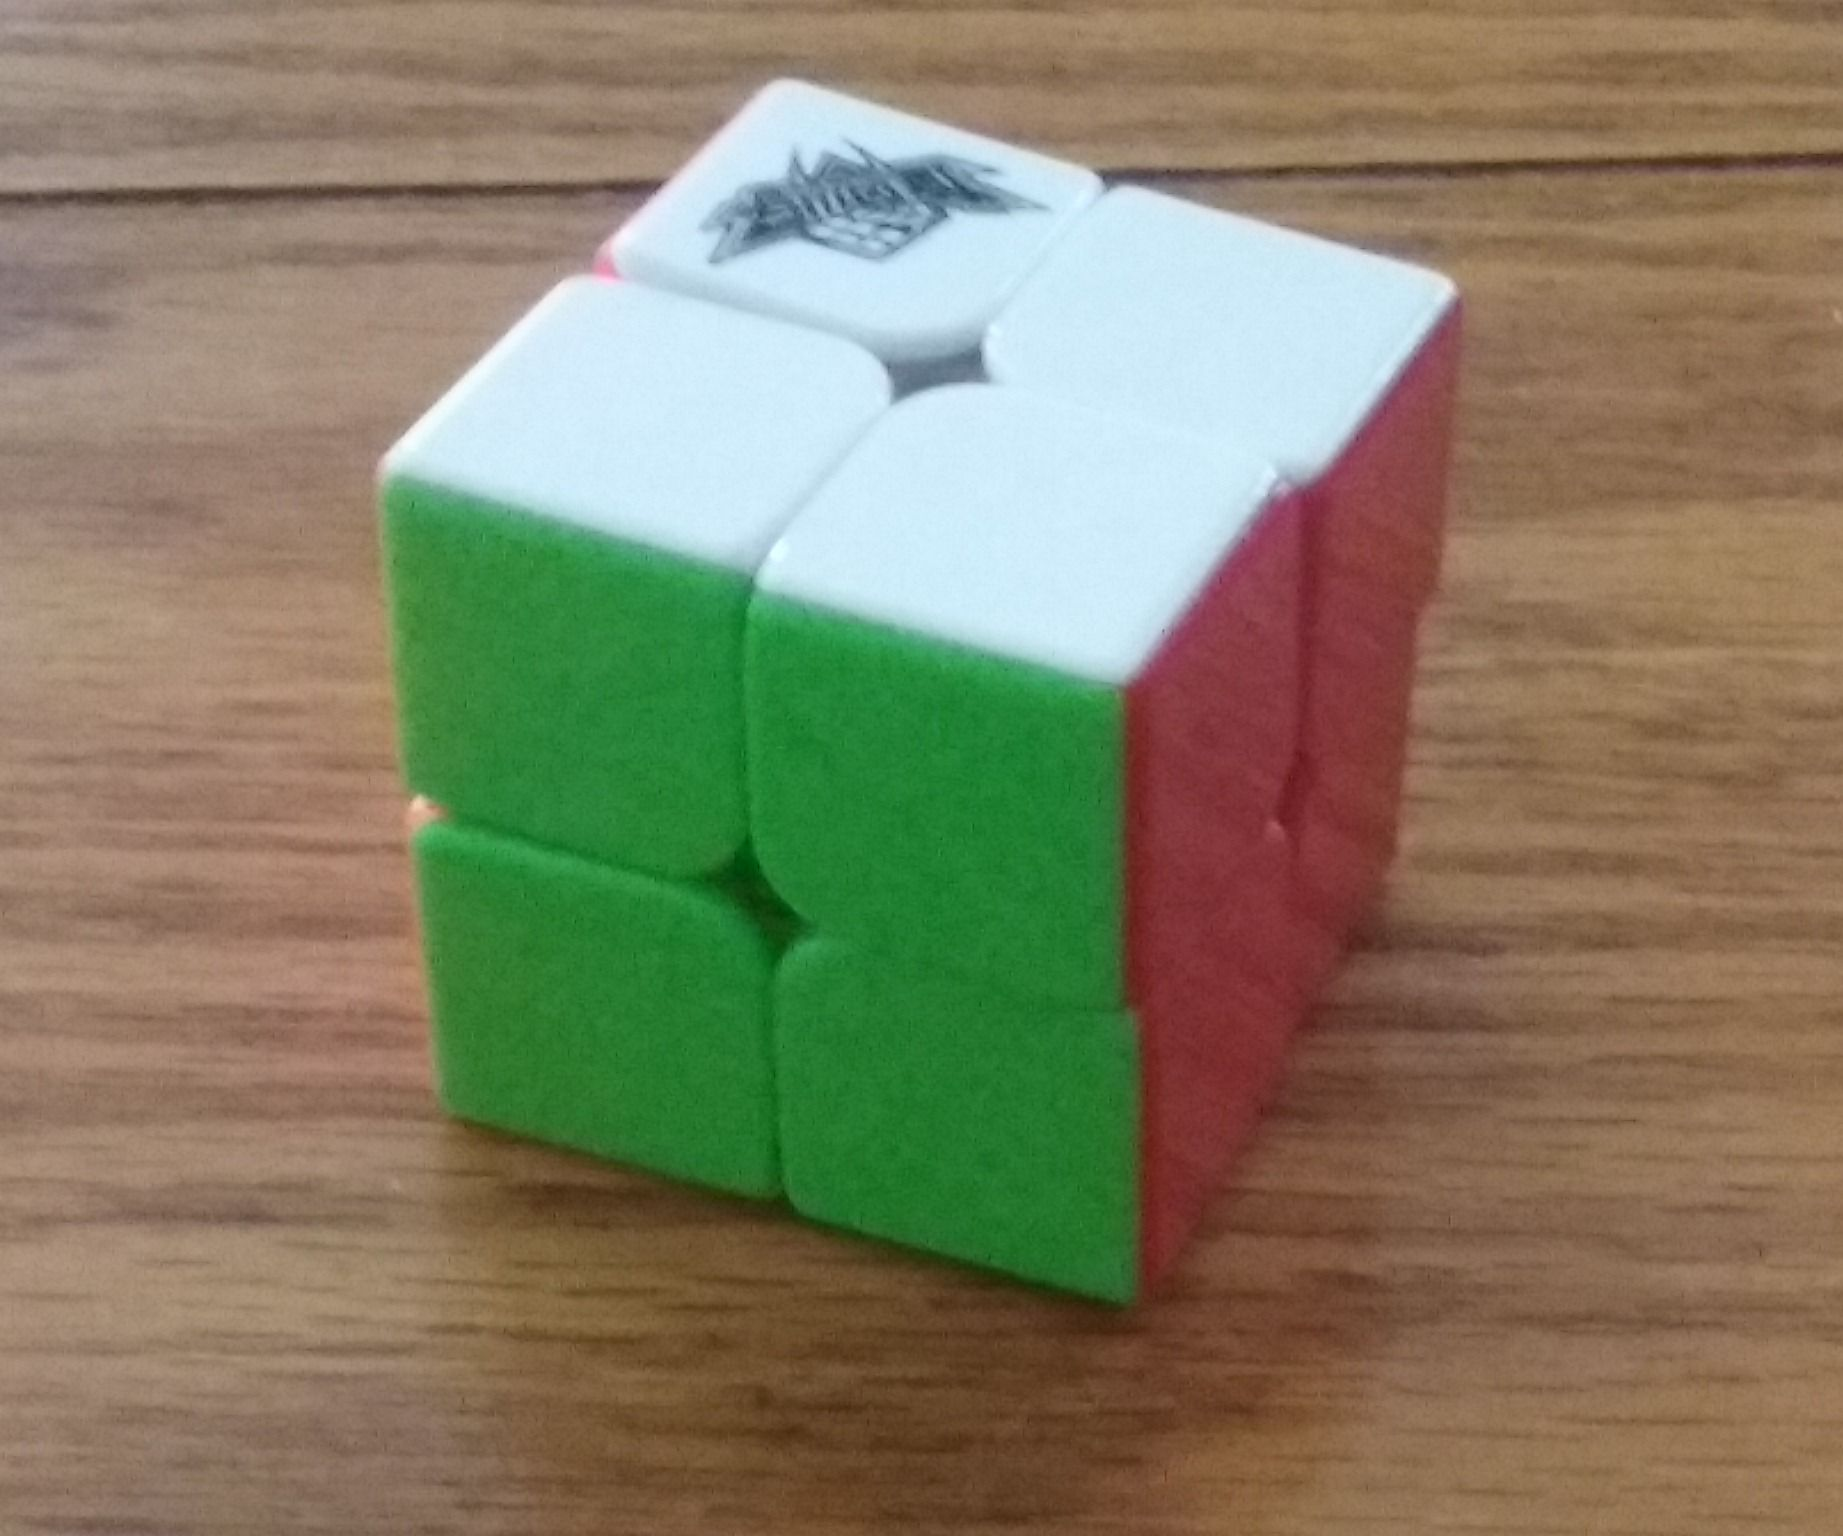 how to solve the 2 by 2 rubik's cube